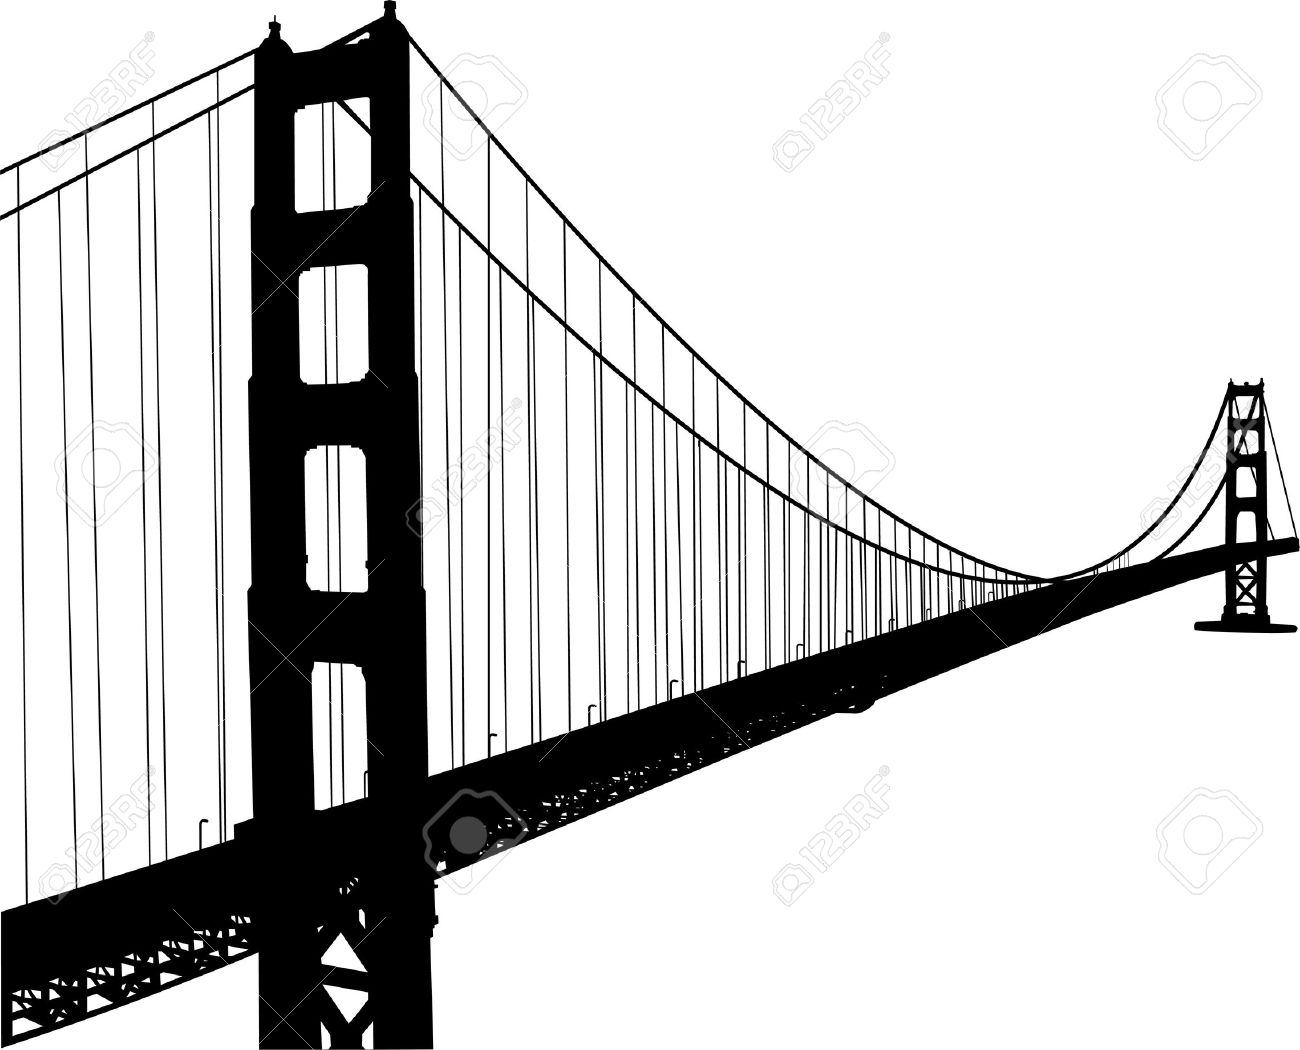 hight resolution of 1300x1050 golden gate clipart black and white